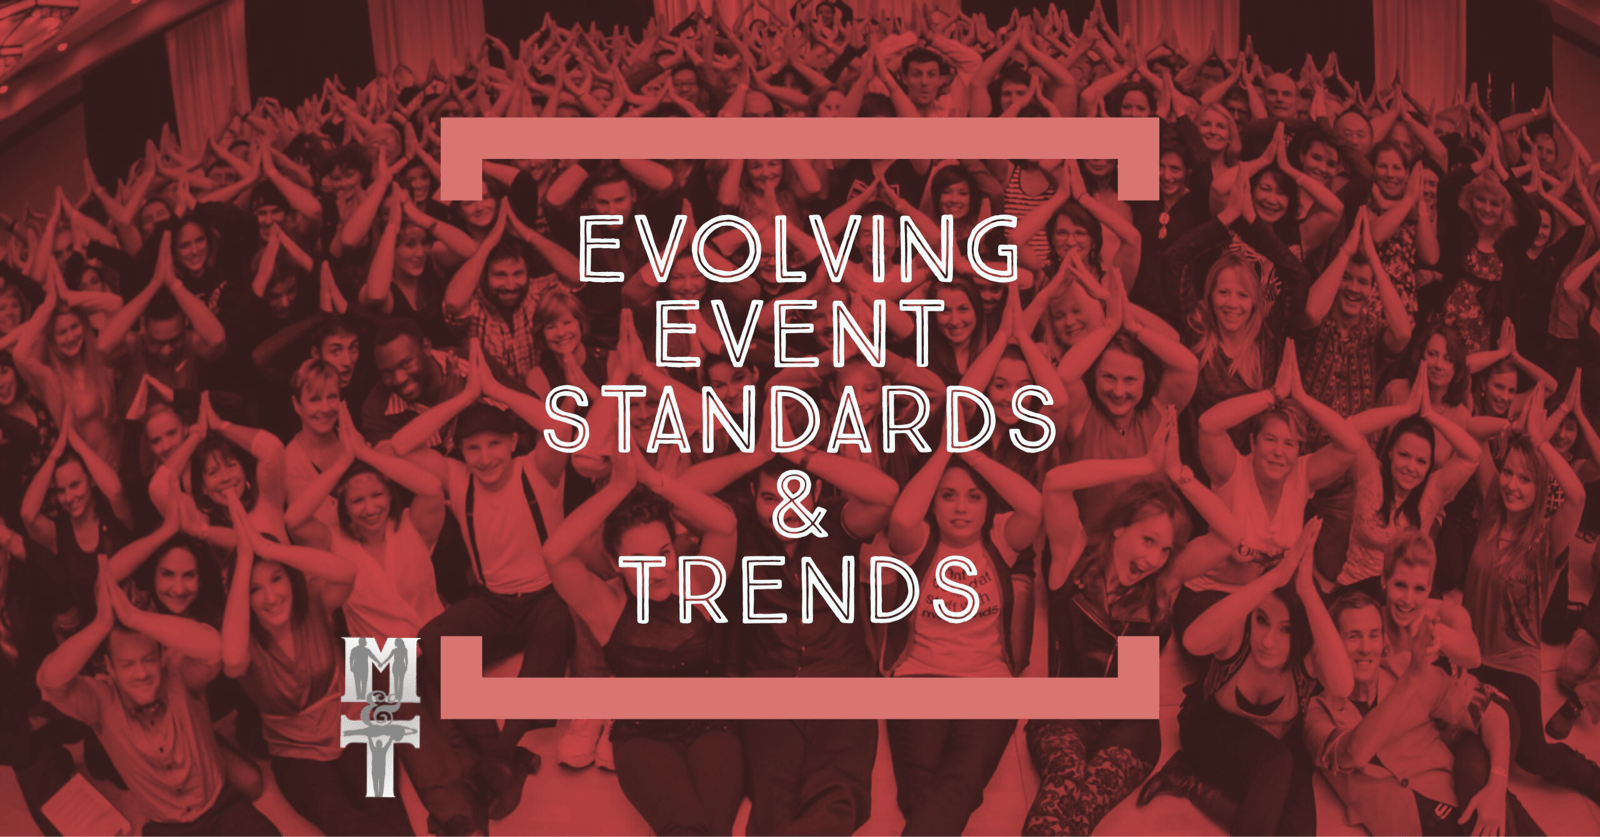 Evolving Event Standards \u0026 Trends | Myles Munroe and Tessa ...